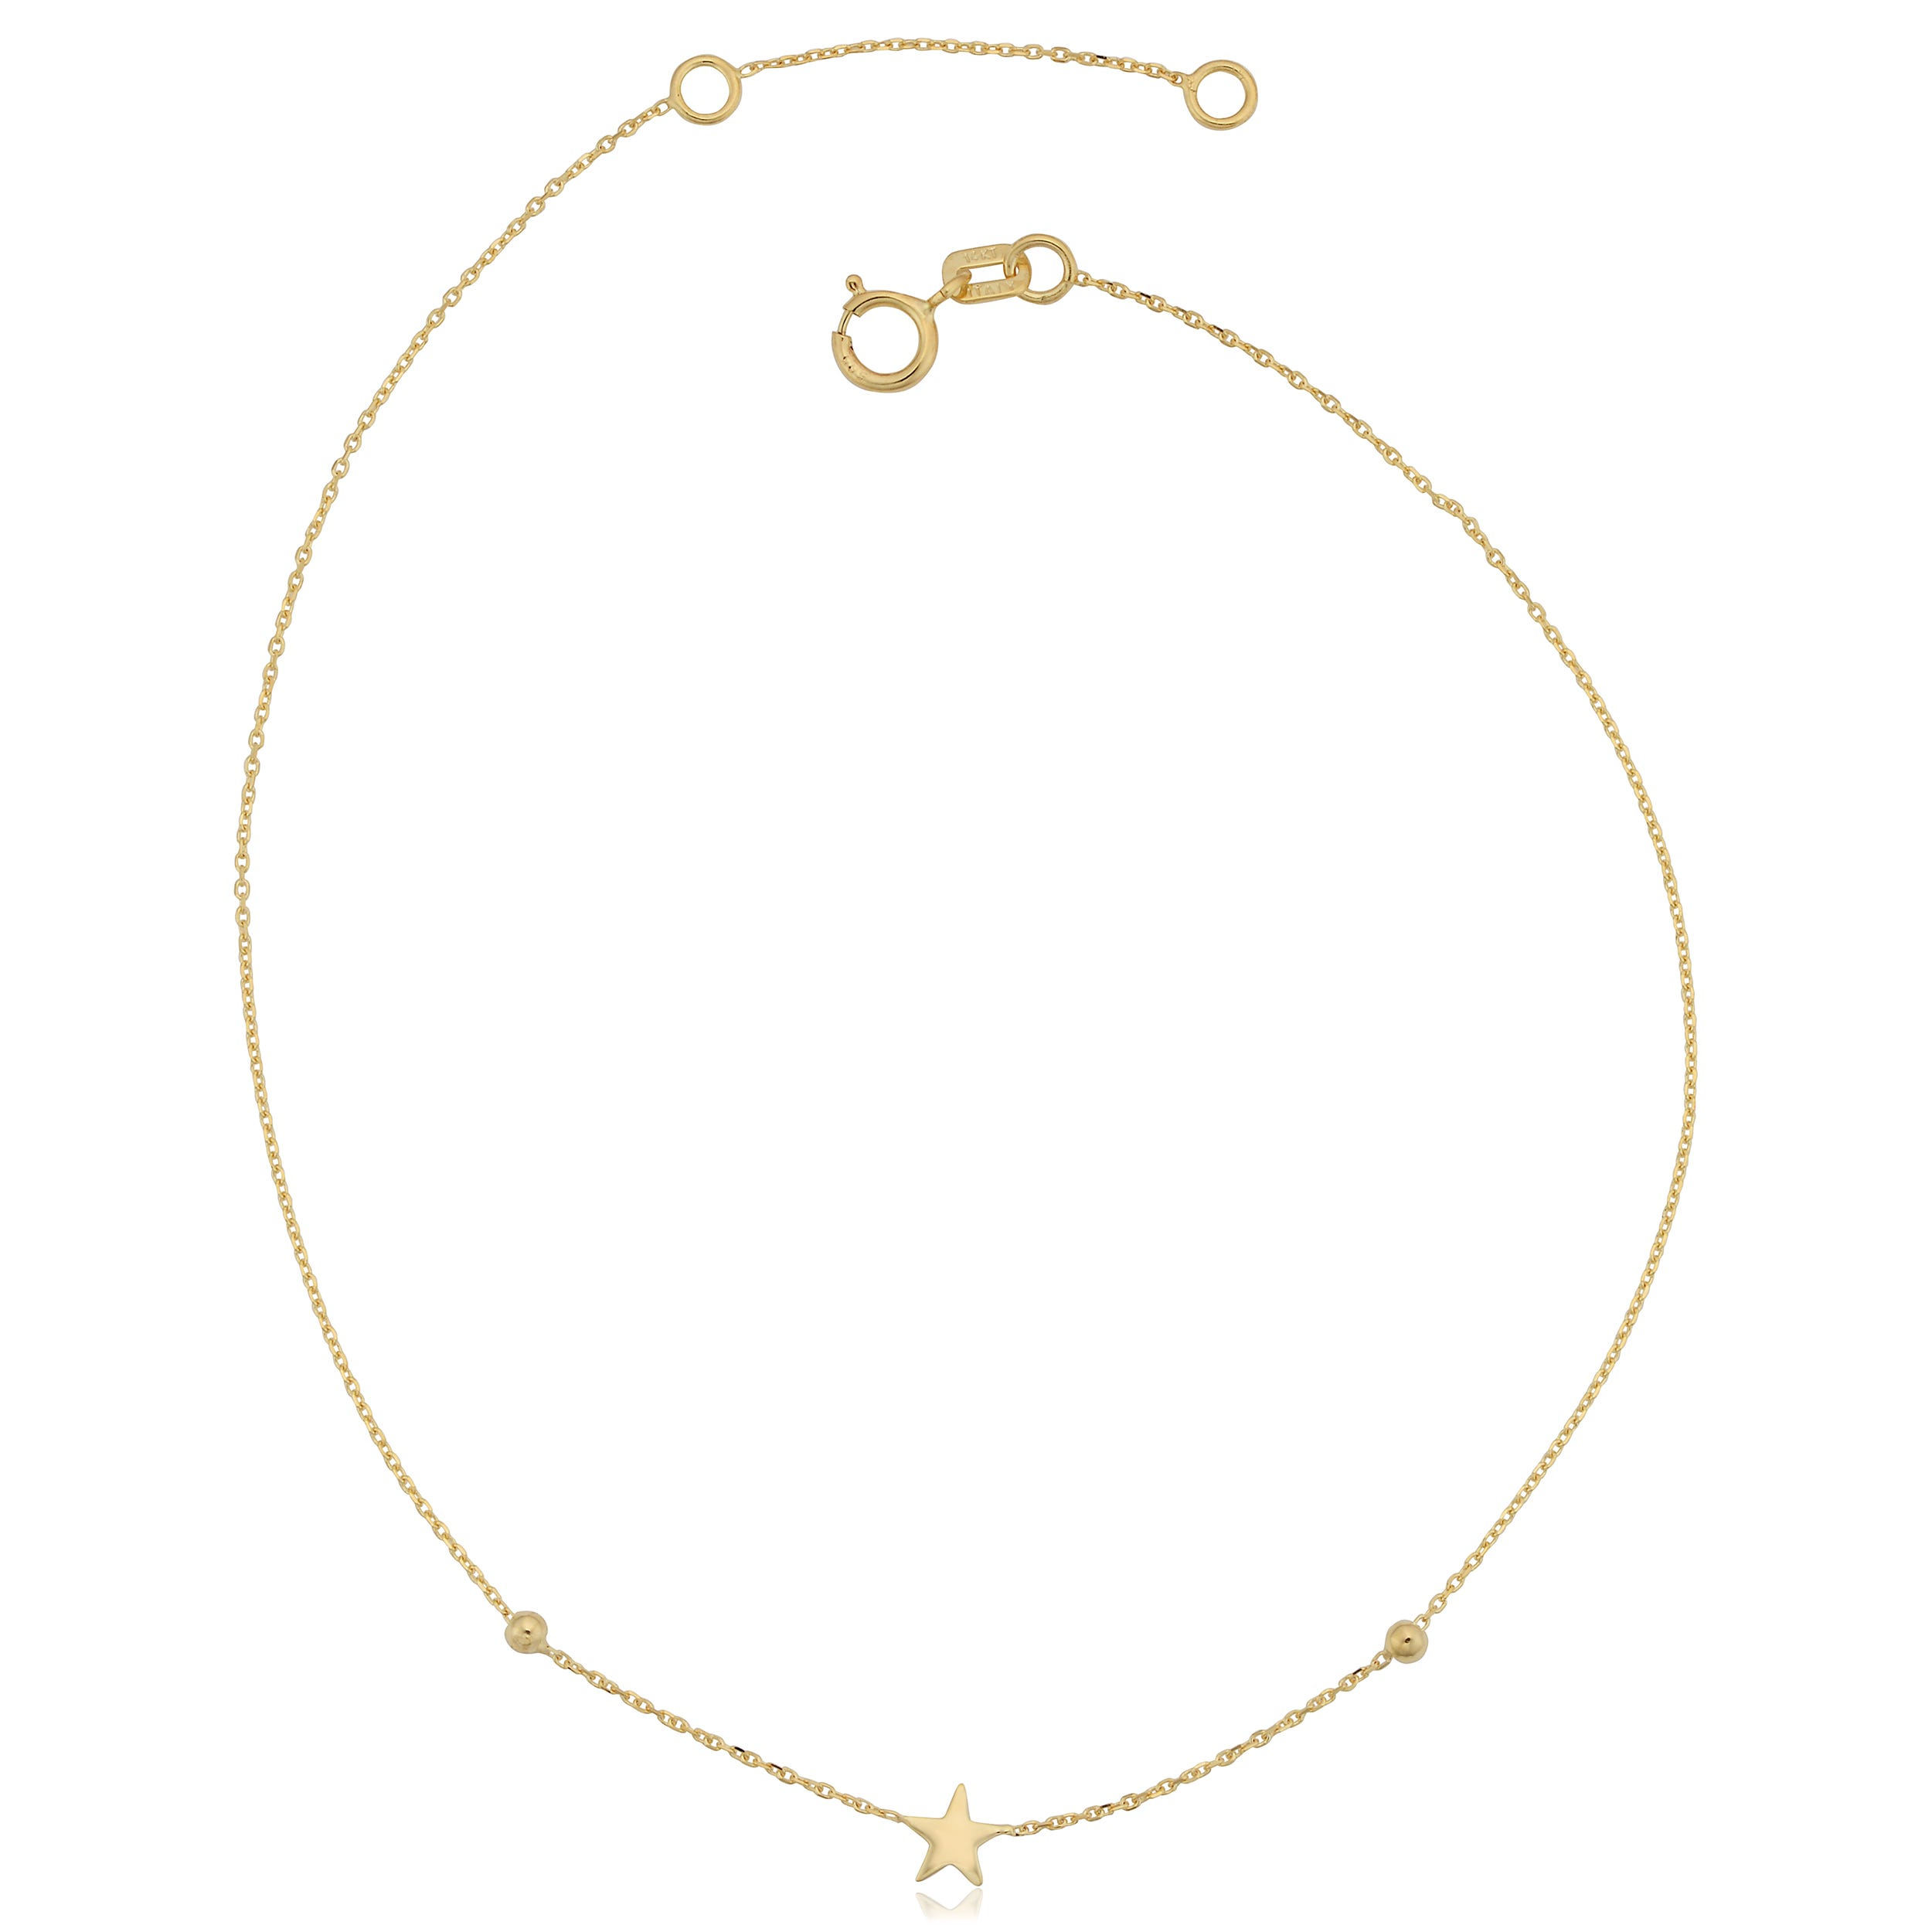 Star Anklet in 14k Yellow Gold